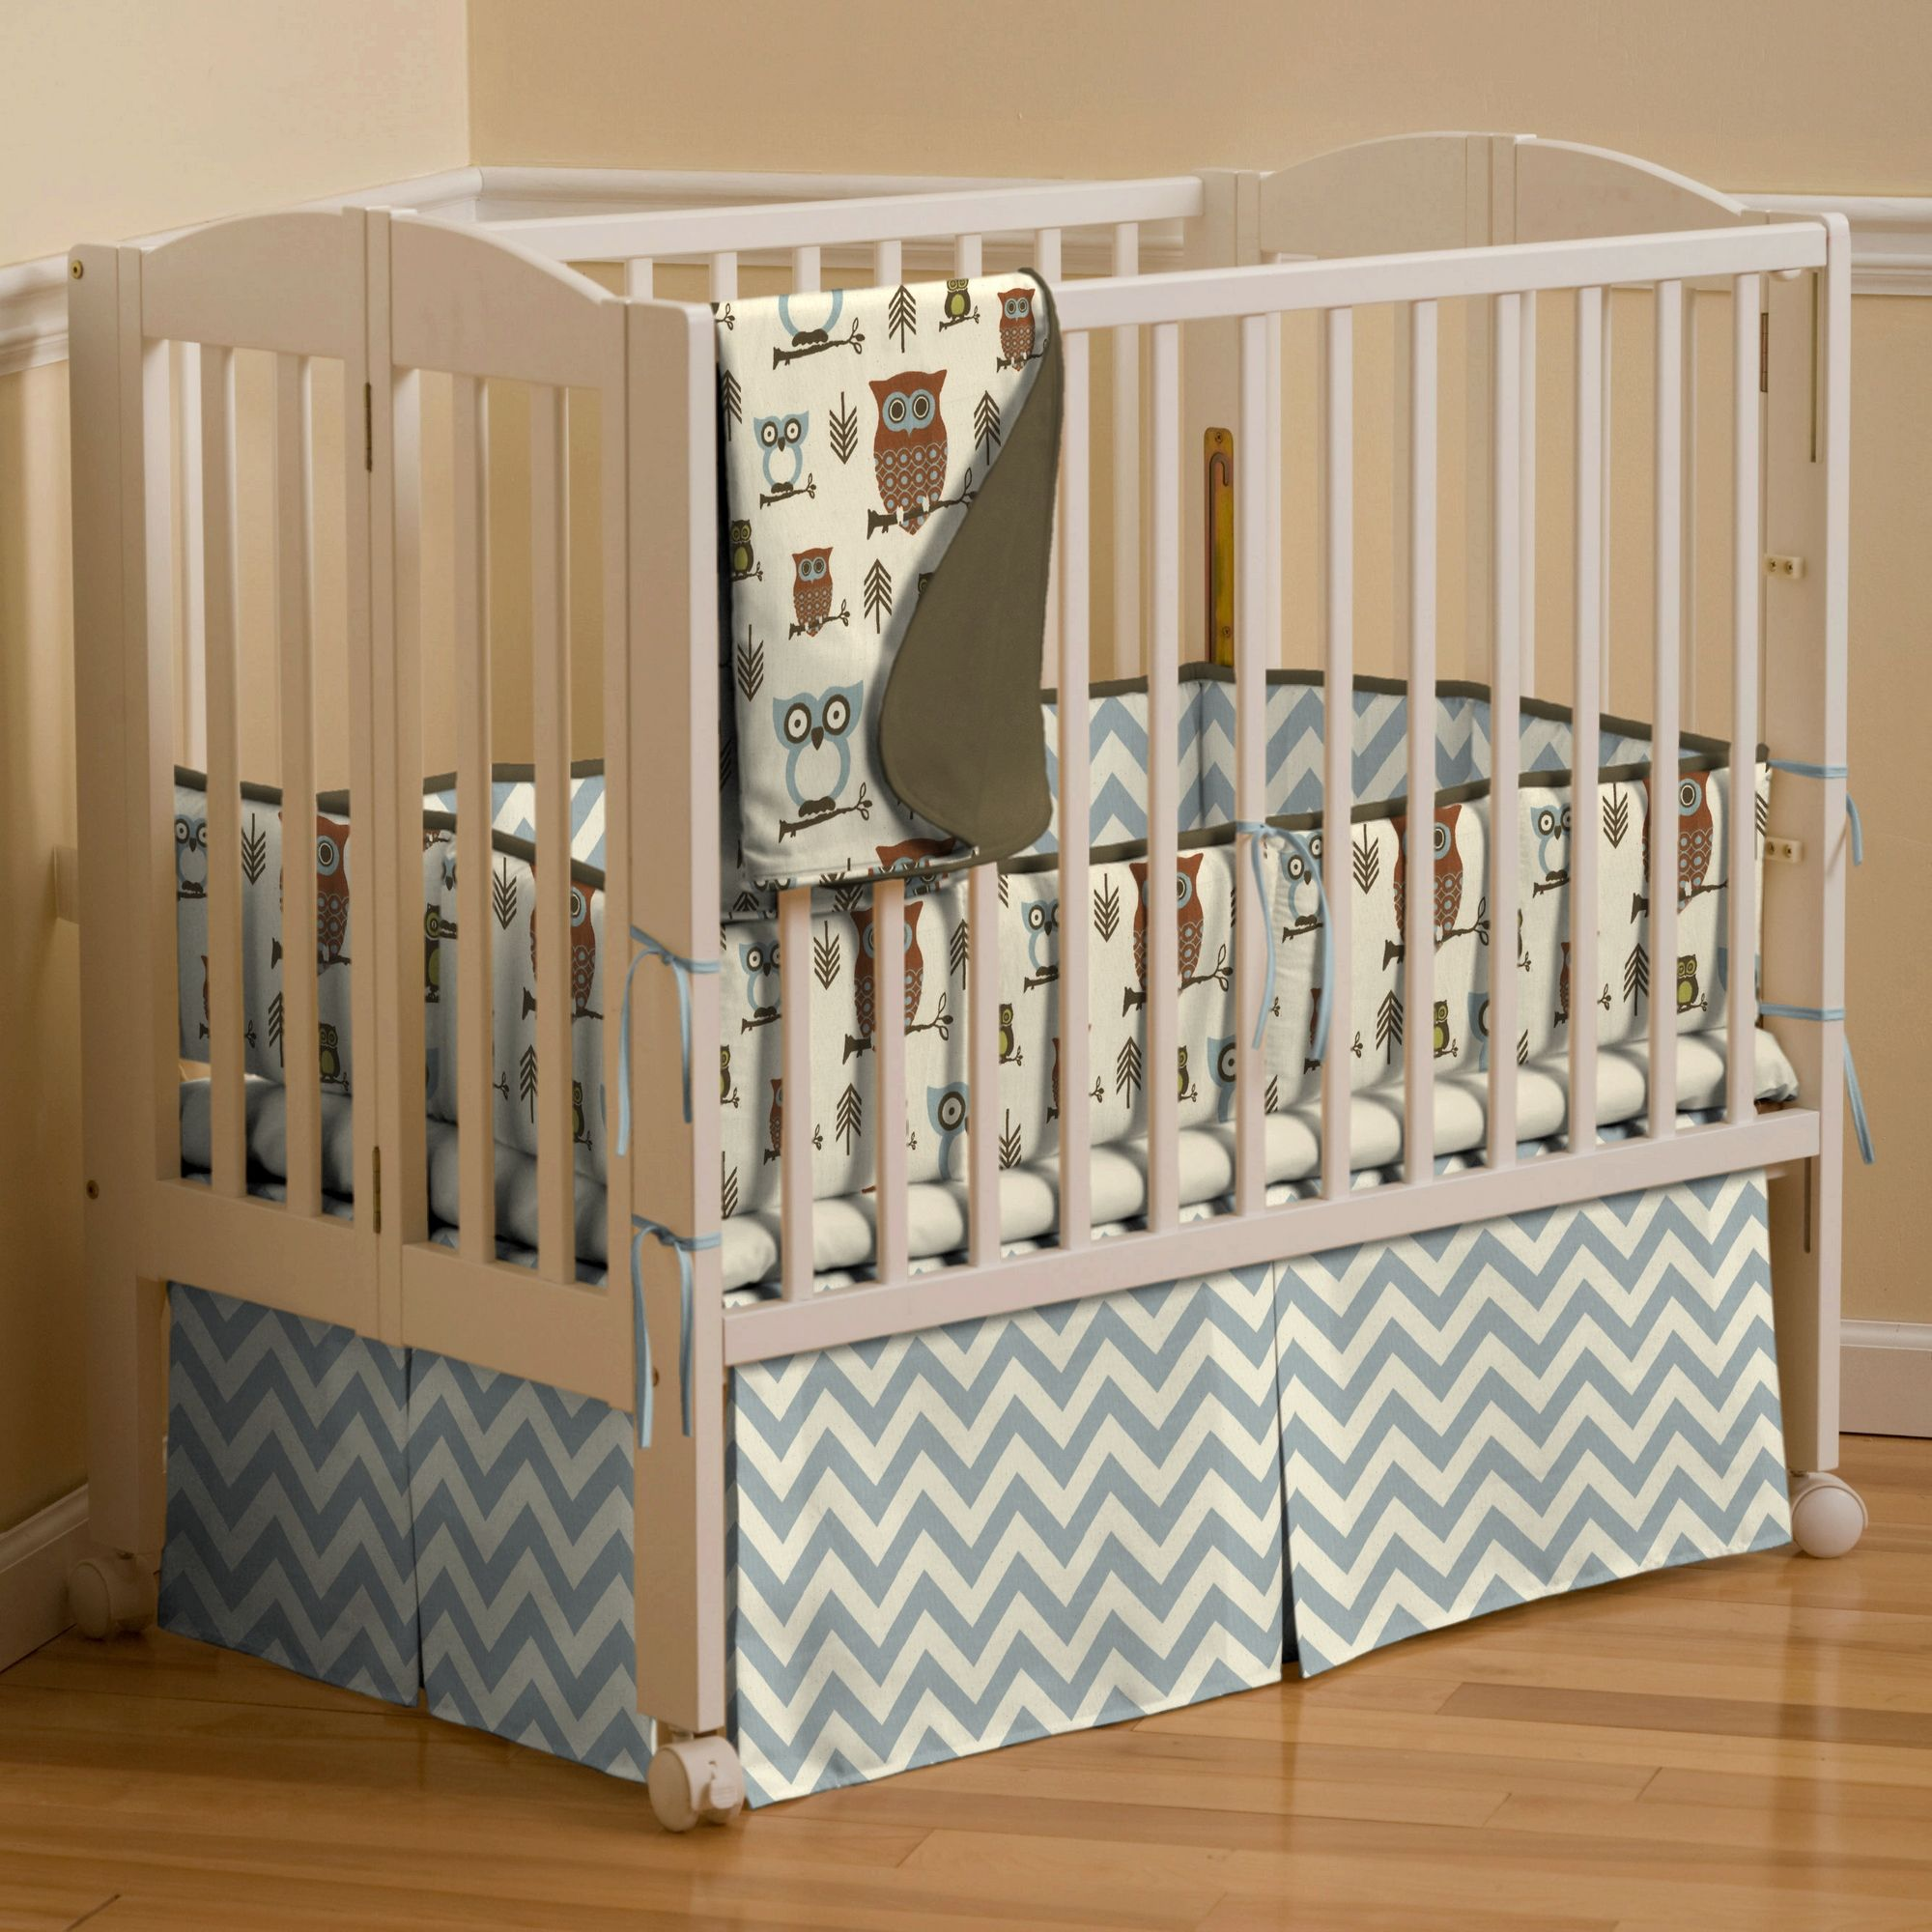 Retro Owls Portable Crib Bedding Carousel Designs Portable Crib Bedding Portable Crib Modern Crib Bedding